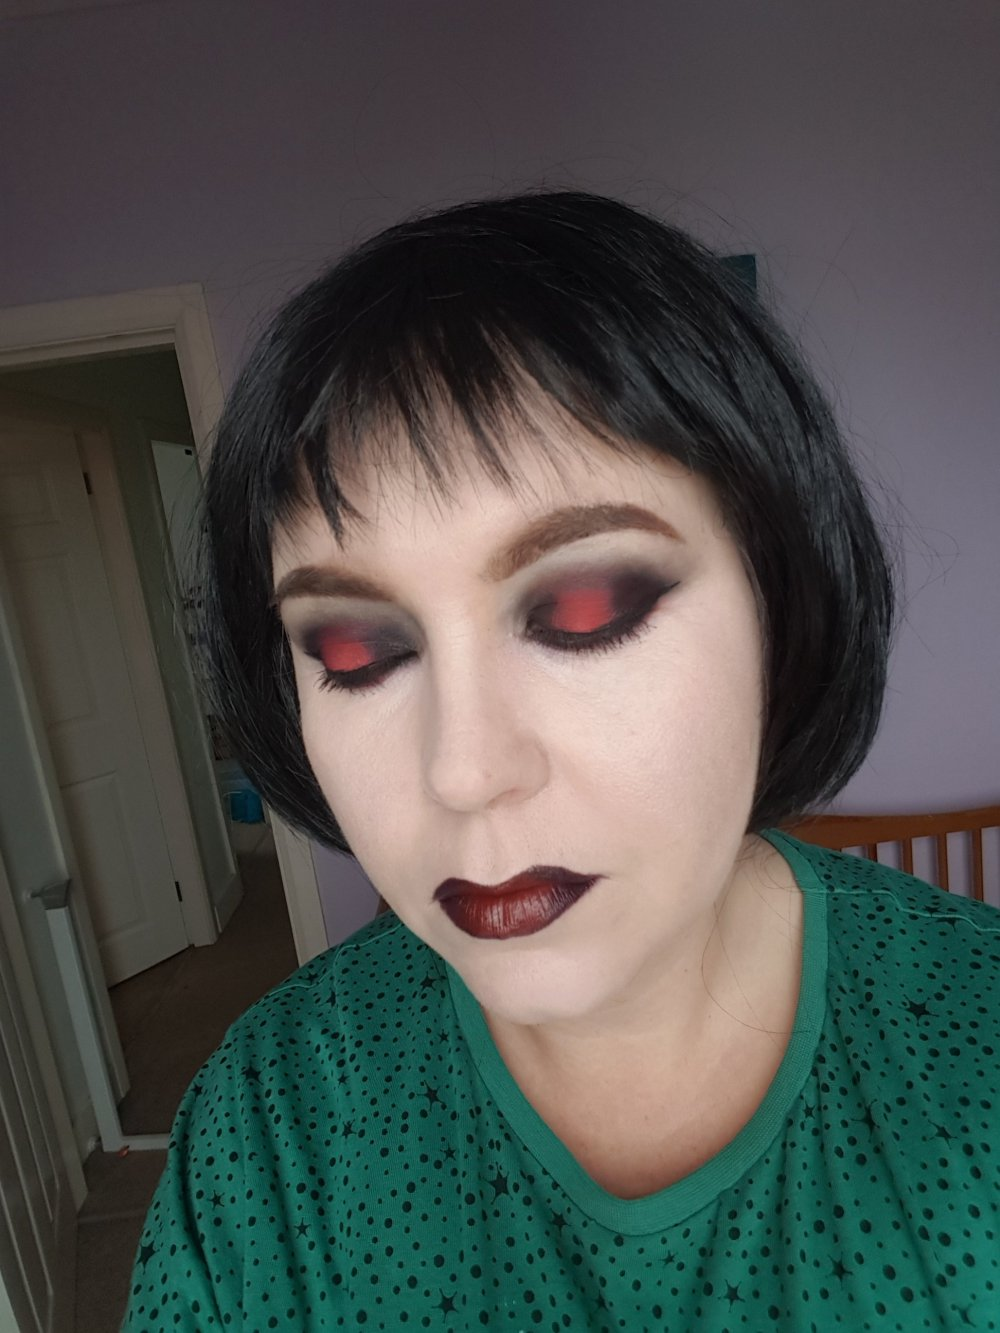 Red and black eye makeup